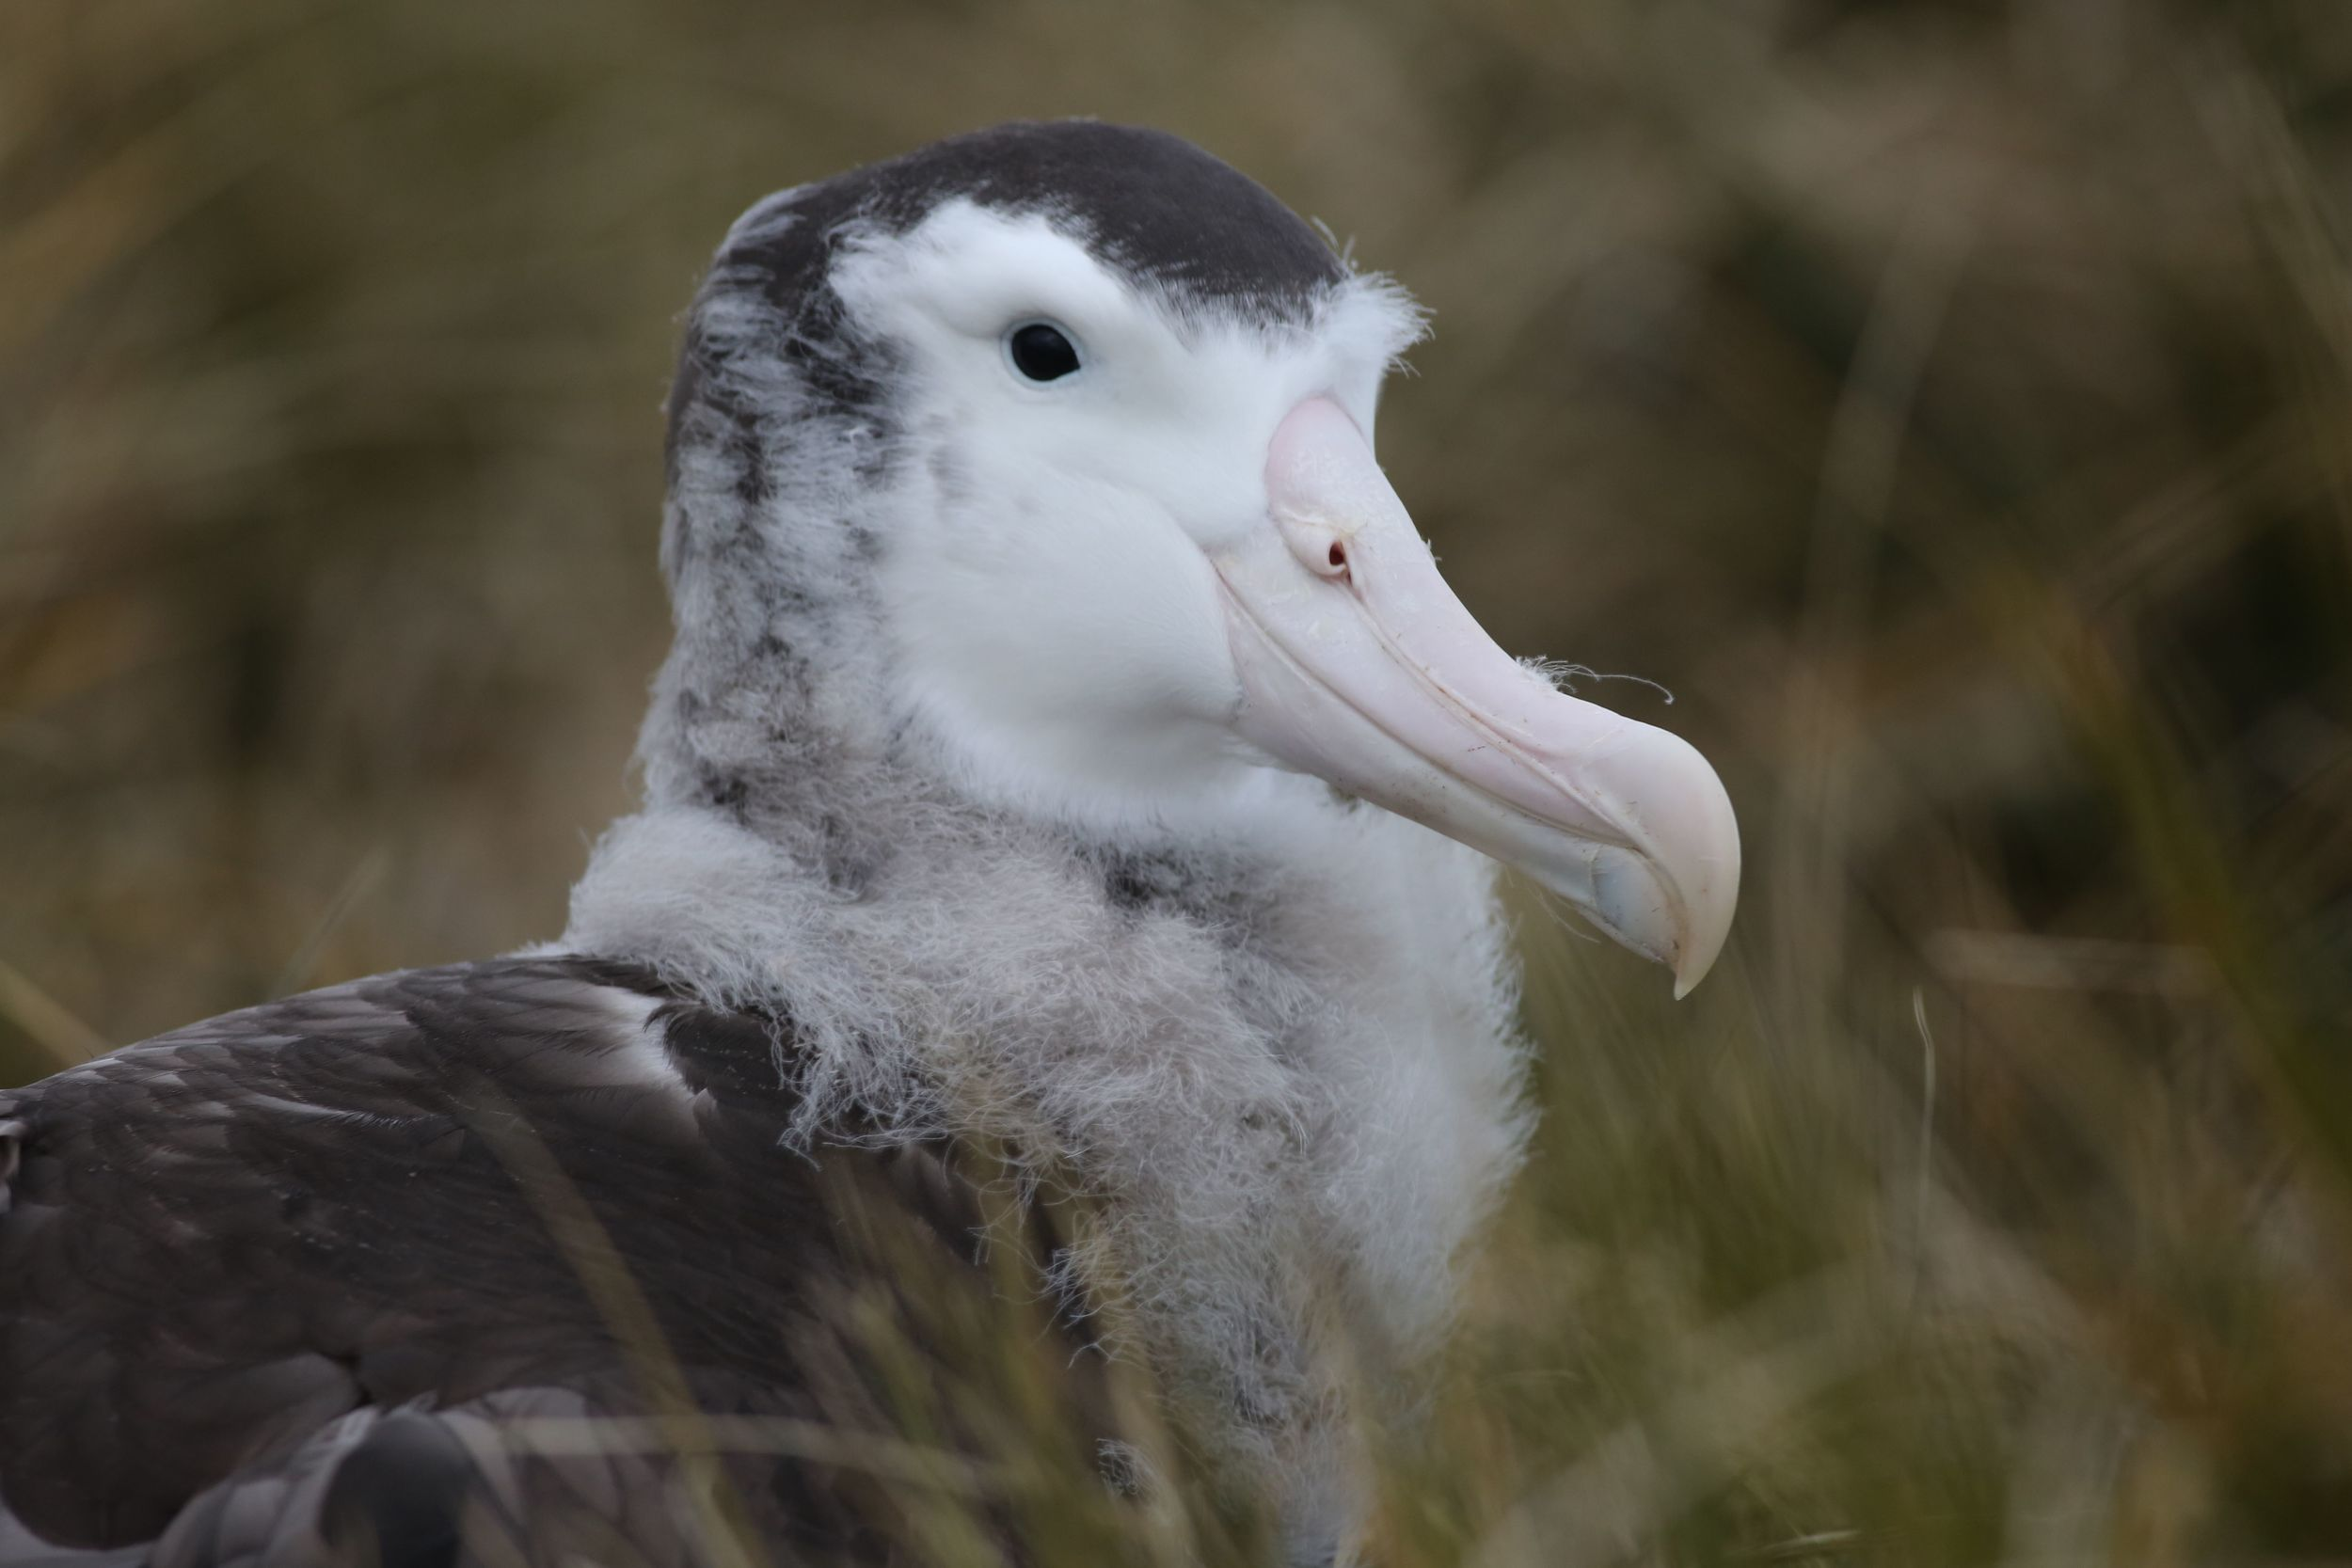 The wandering albatrosses that we saw on the nests were seven-month-old juveniles. Our ship ornithologist, Simon Boyes, affectionately called this one Albert. Young Albert had been waiting for days for his parents—amazing long-distance flyers, as all albatrosses are—to return from a 3,100-mile flight to the waters off Brazil to gather food that they would regurgitate to feed him.